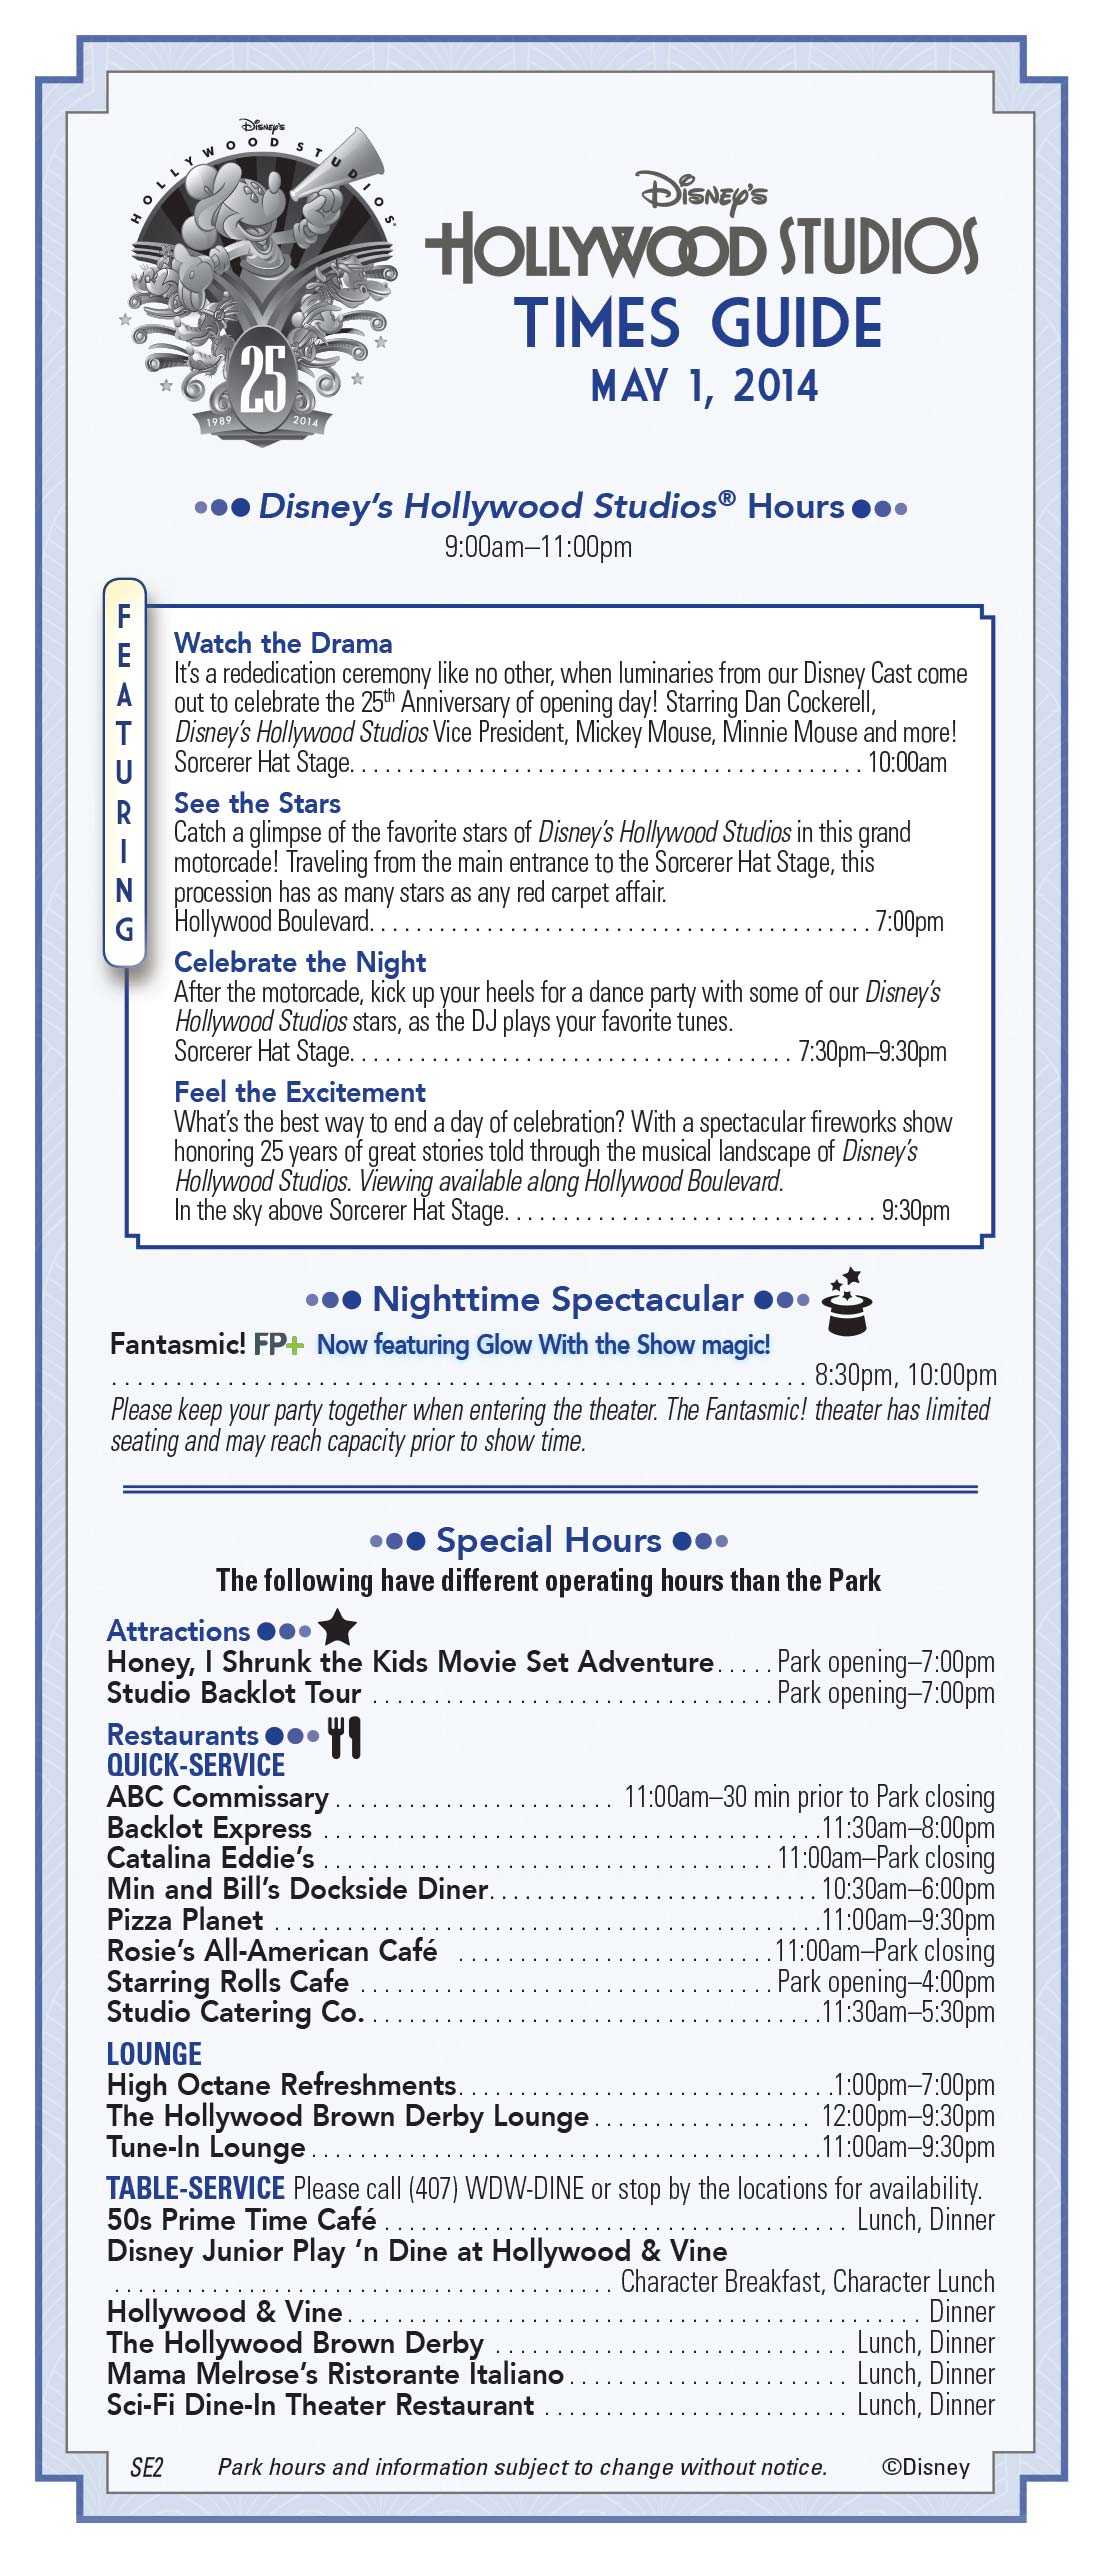 Disney's Hollywood Studios 25th Anniversary times guide front